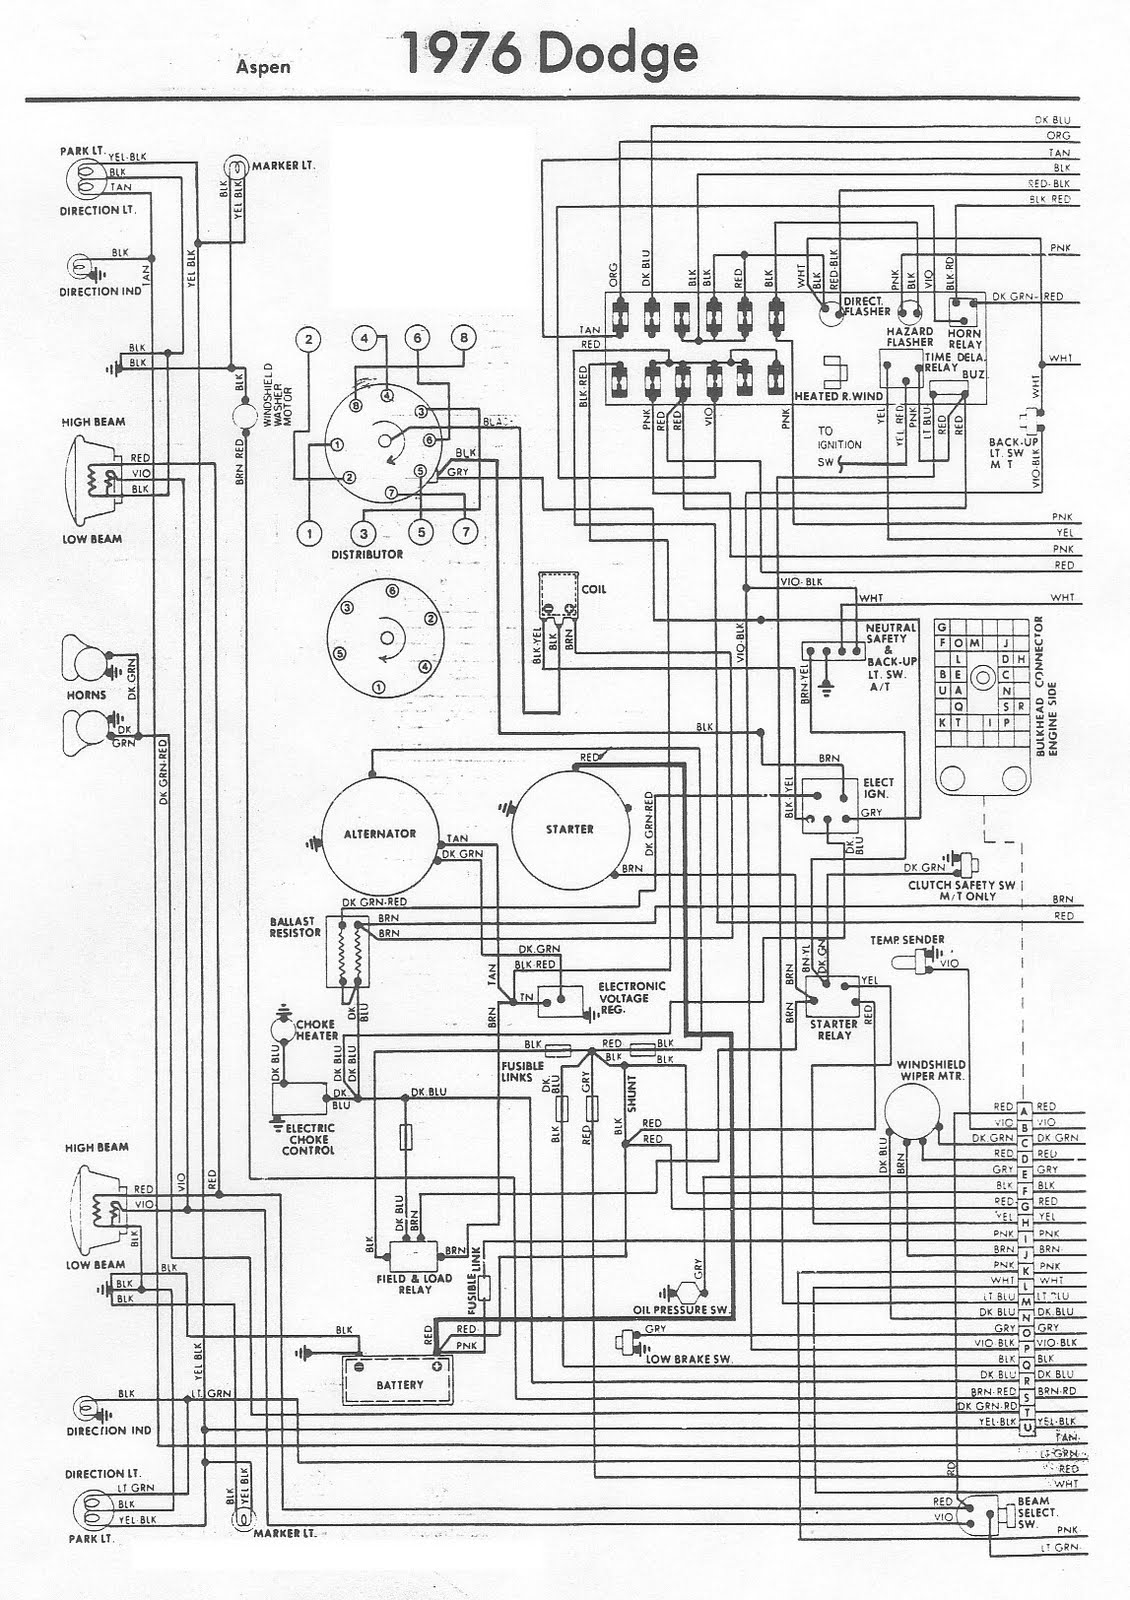 76_Dodge_Aspen_Engine_wiring free auto wiring diagram 1976 dodge aspen engine compartment free automotive electrical wiring diagrams at honlapkeszites.co